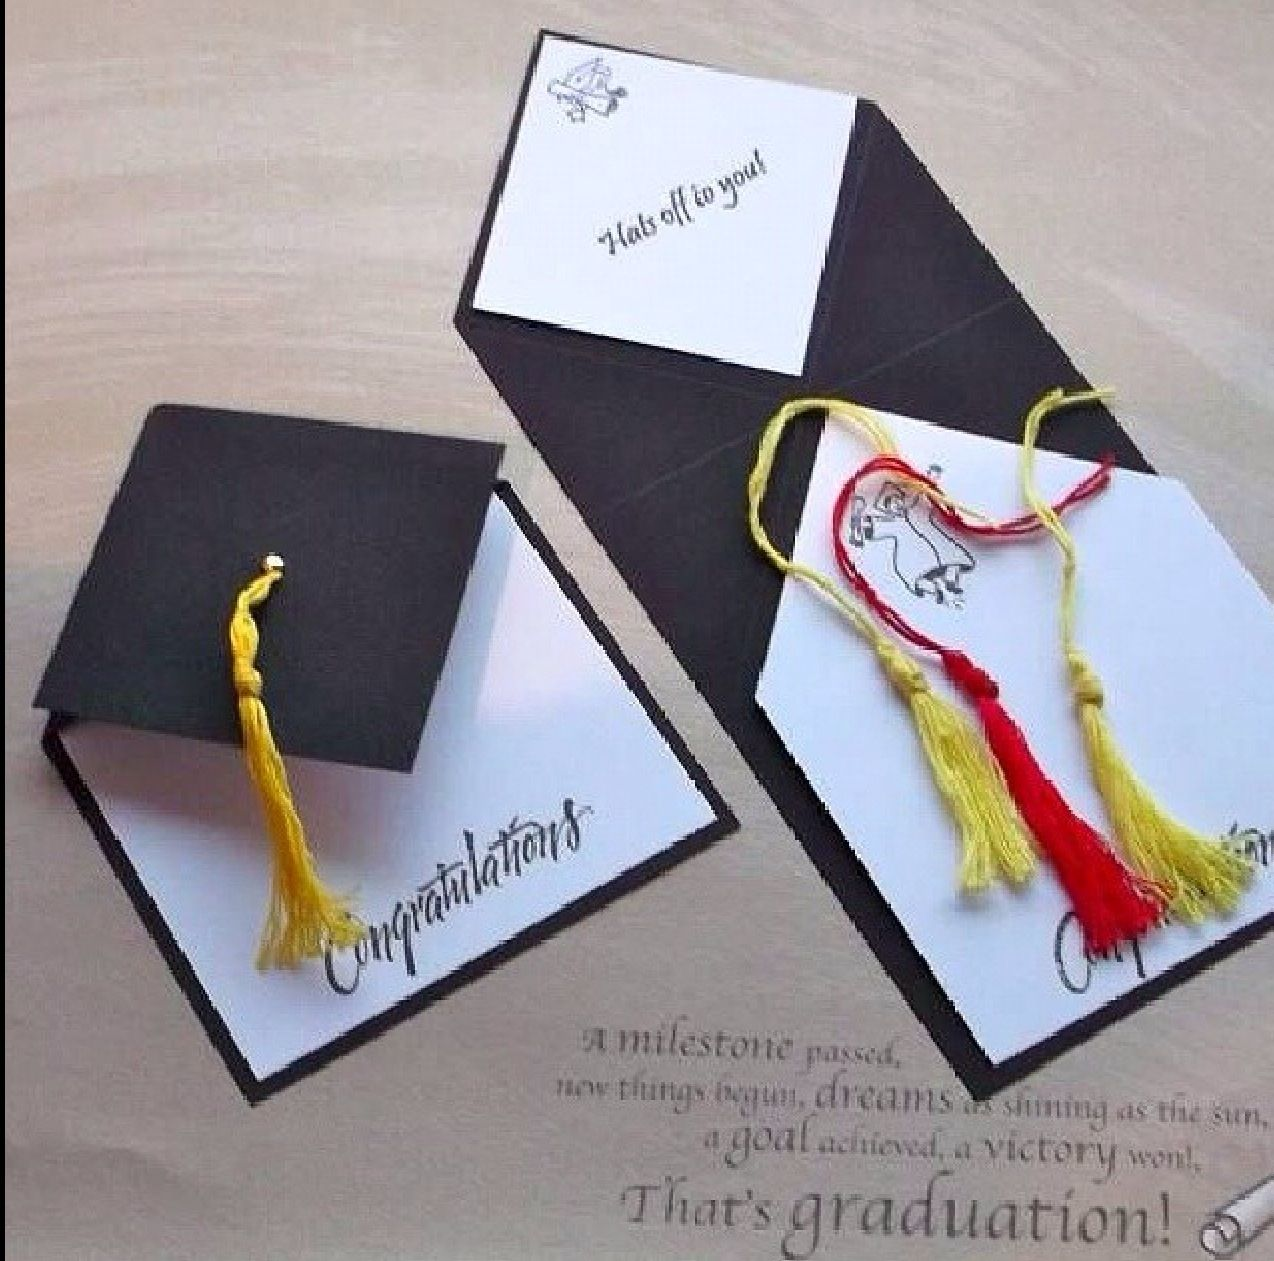 Pin by meroz on party ideas pinterest cards graduation cards and card ideas for Graduation announcements pinterest